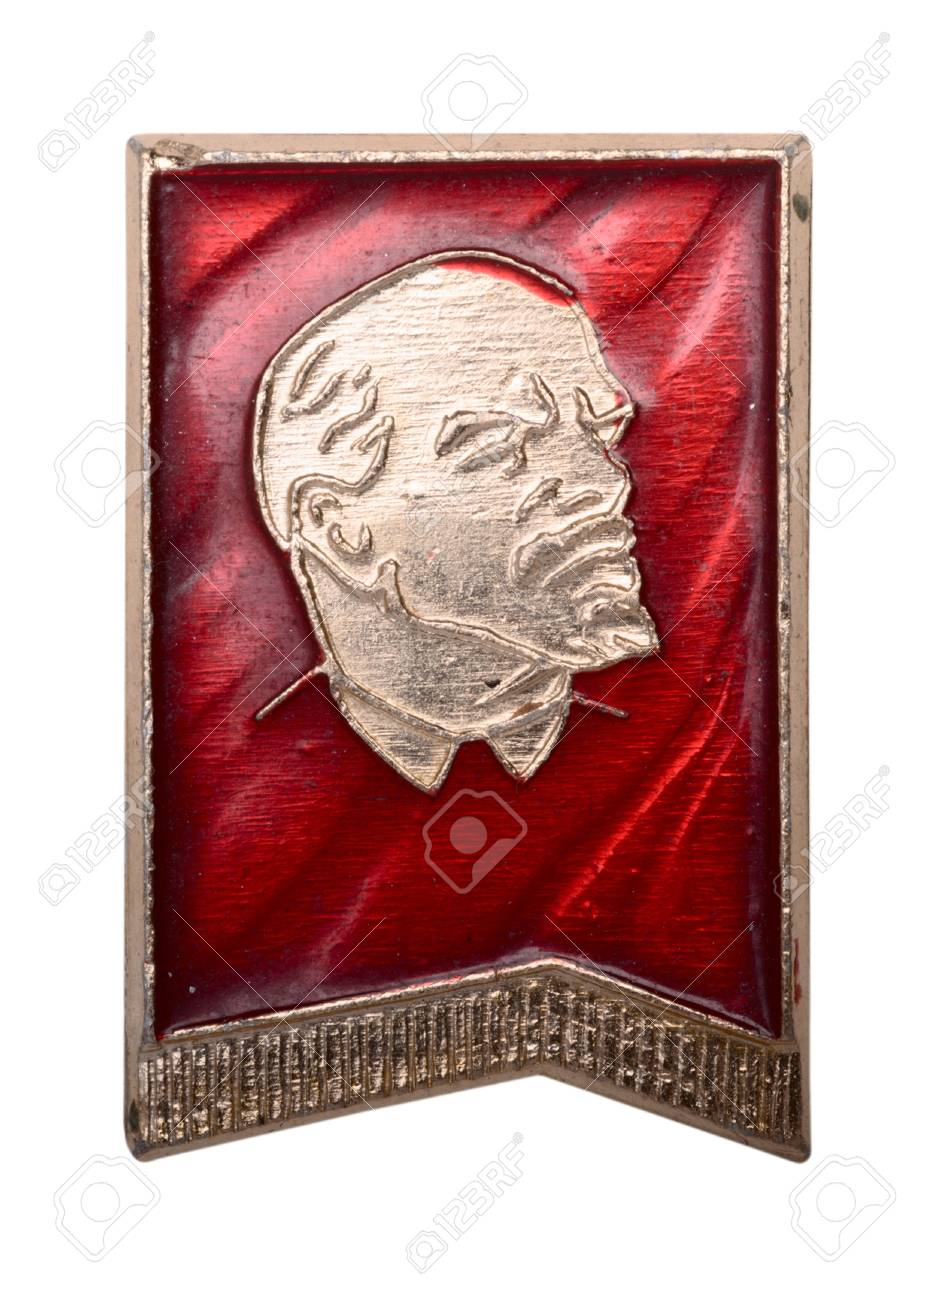 Soviet Badge With Lenin Isolated On A White Background Stock Photo 938x1300